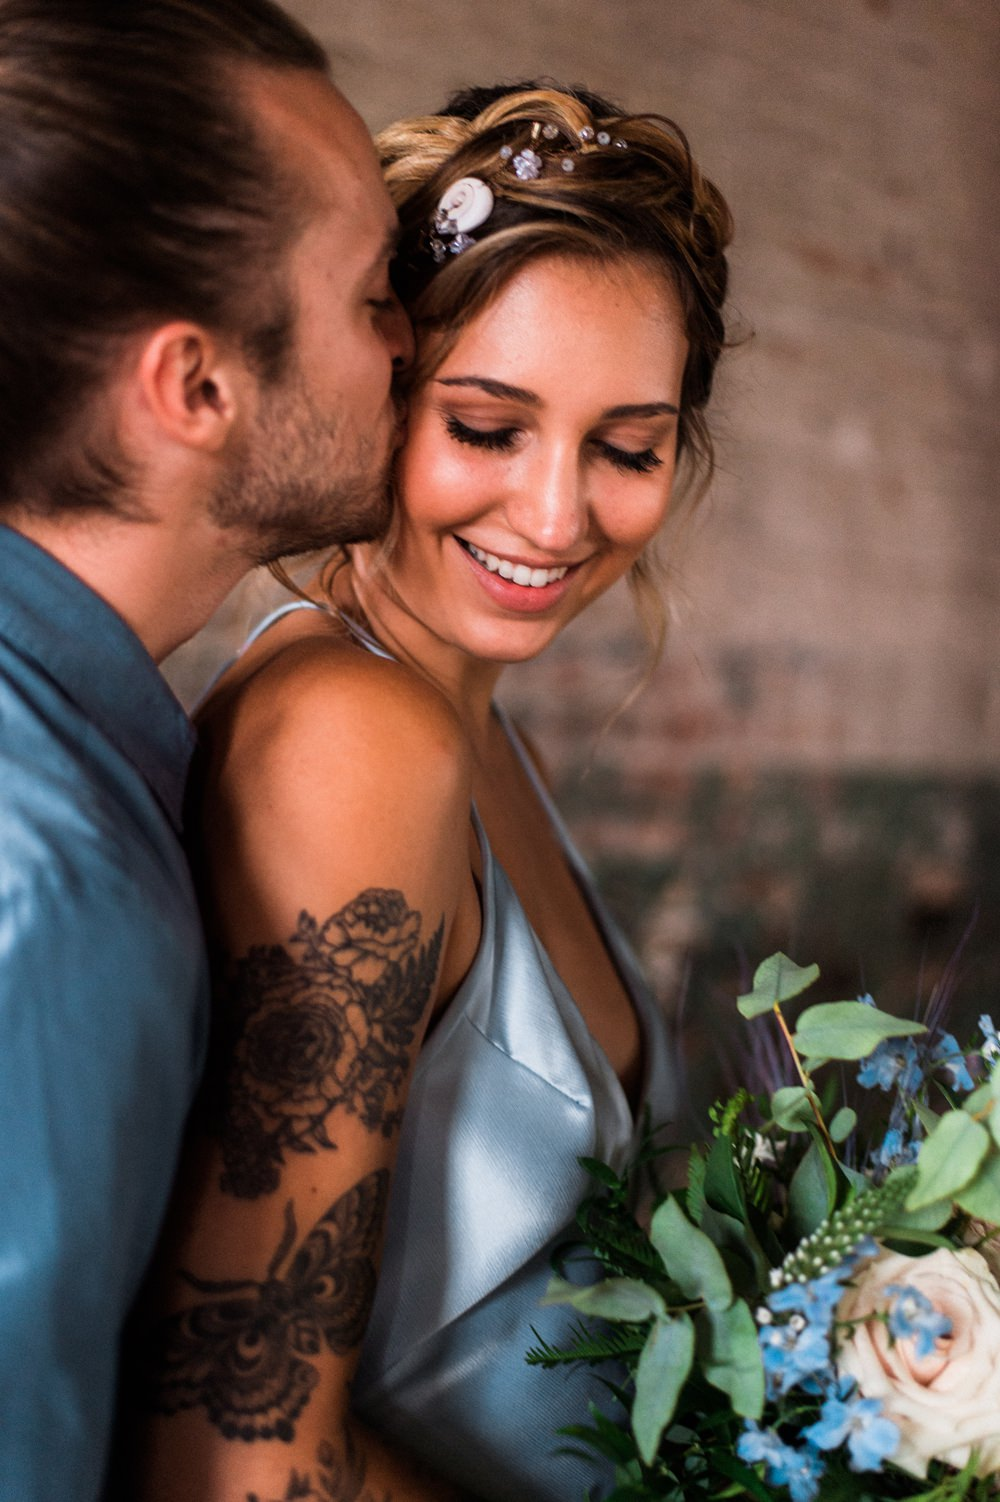 Nature Inspired Styled Shoot Seashell Headpiece Updo Tattooed Bride Blue Dress Casual Groom Blue Shirt Pastel Bouquet Kiss | Ocean Wedding Ideas Industrial Rachel Watkinson Photography